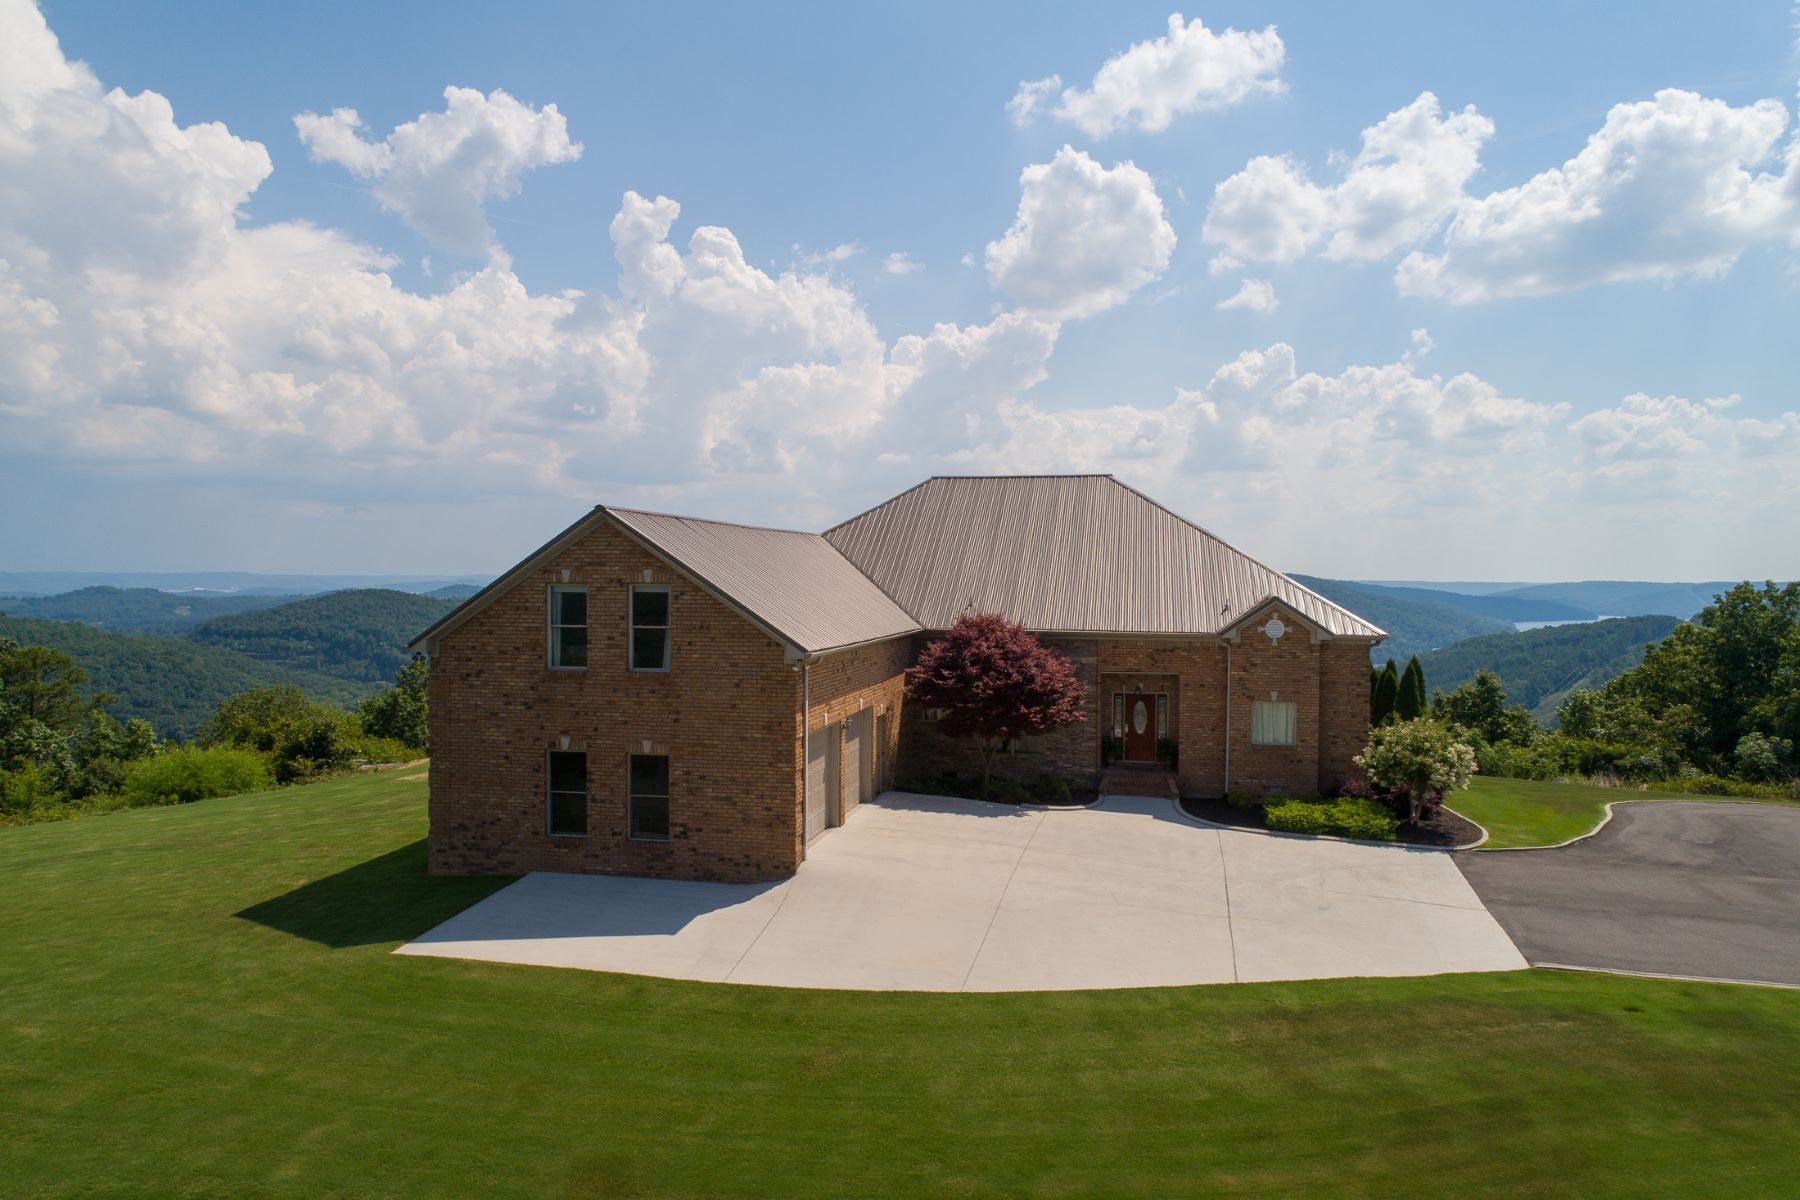 Single Family Homes for Active at 1000 Starnes Loop Road Grant, Alabama 35747 United States